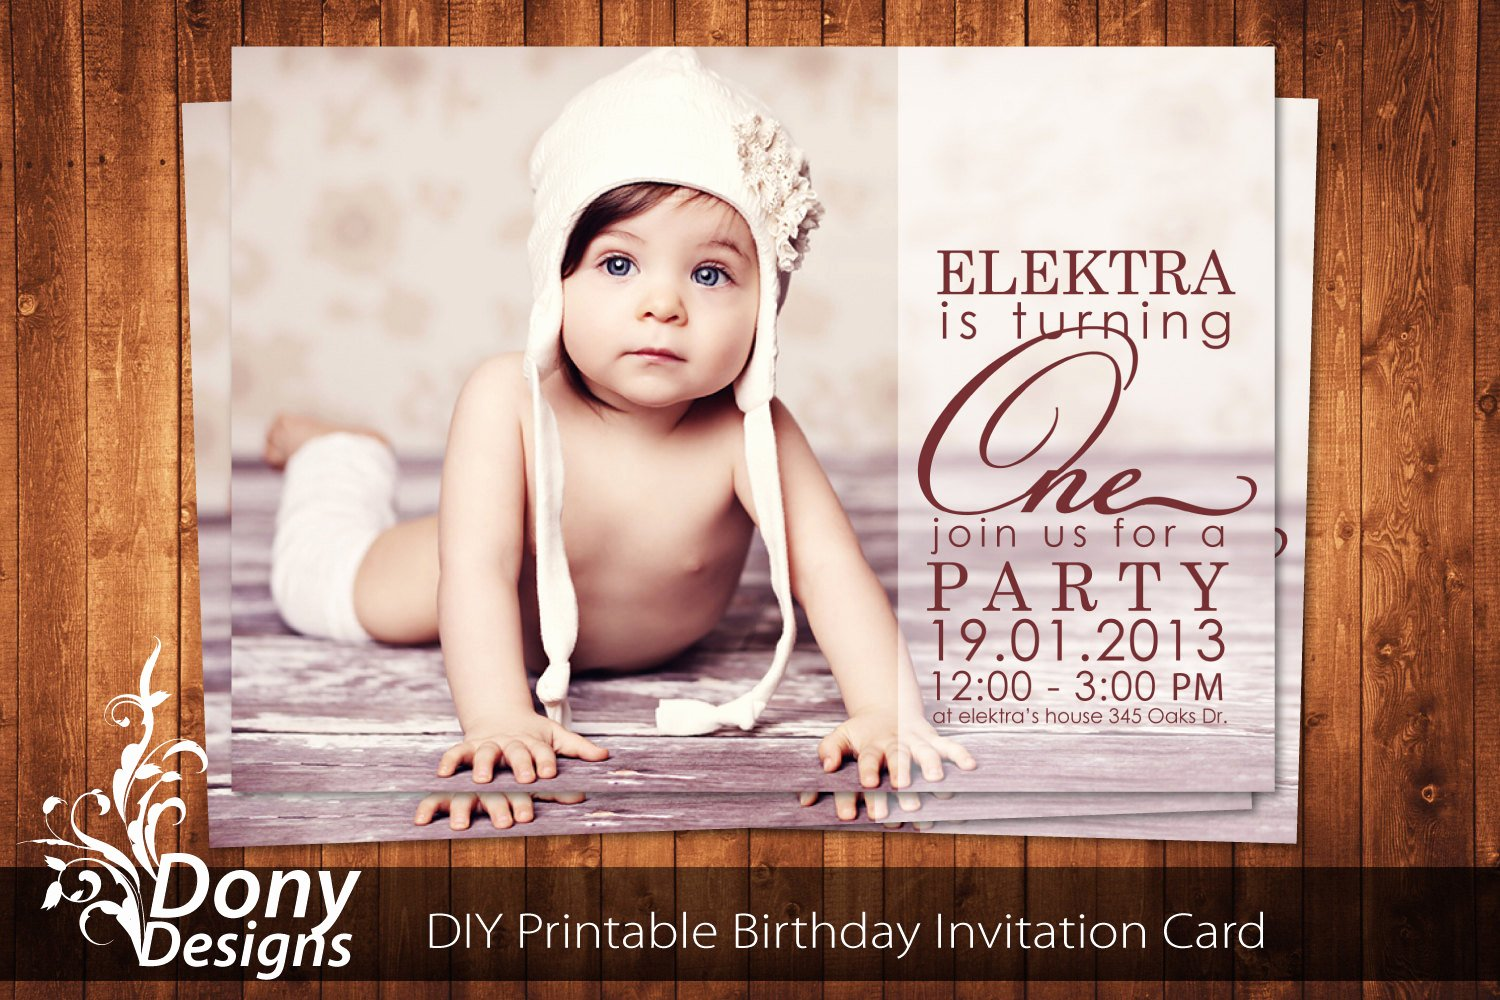 Birthday Invitation Template Photoshop Inspirational Buy 1 Get 1 Free Birthday Invitation Card Shop